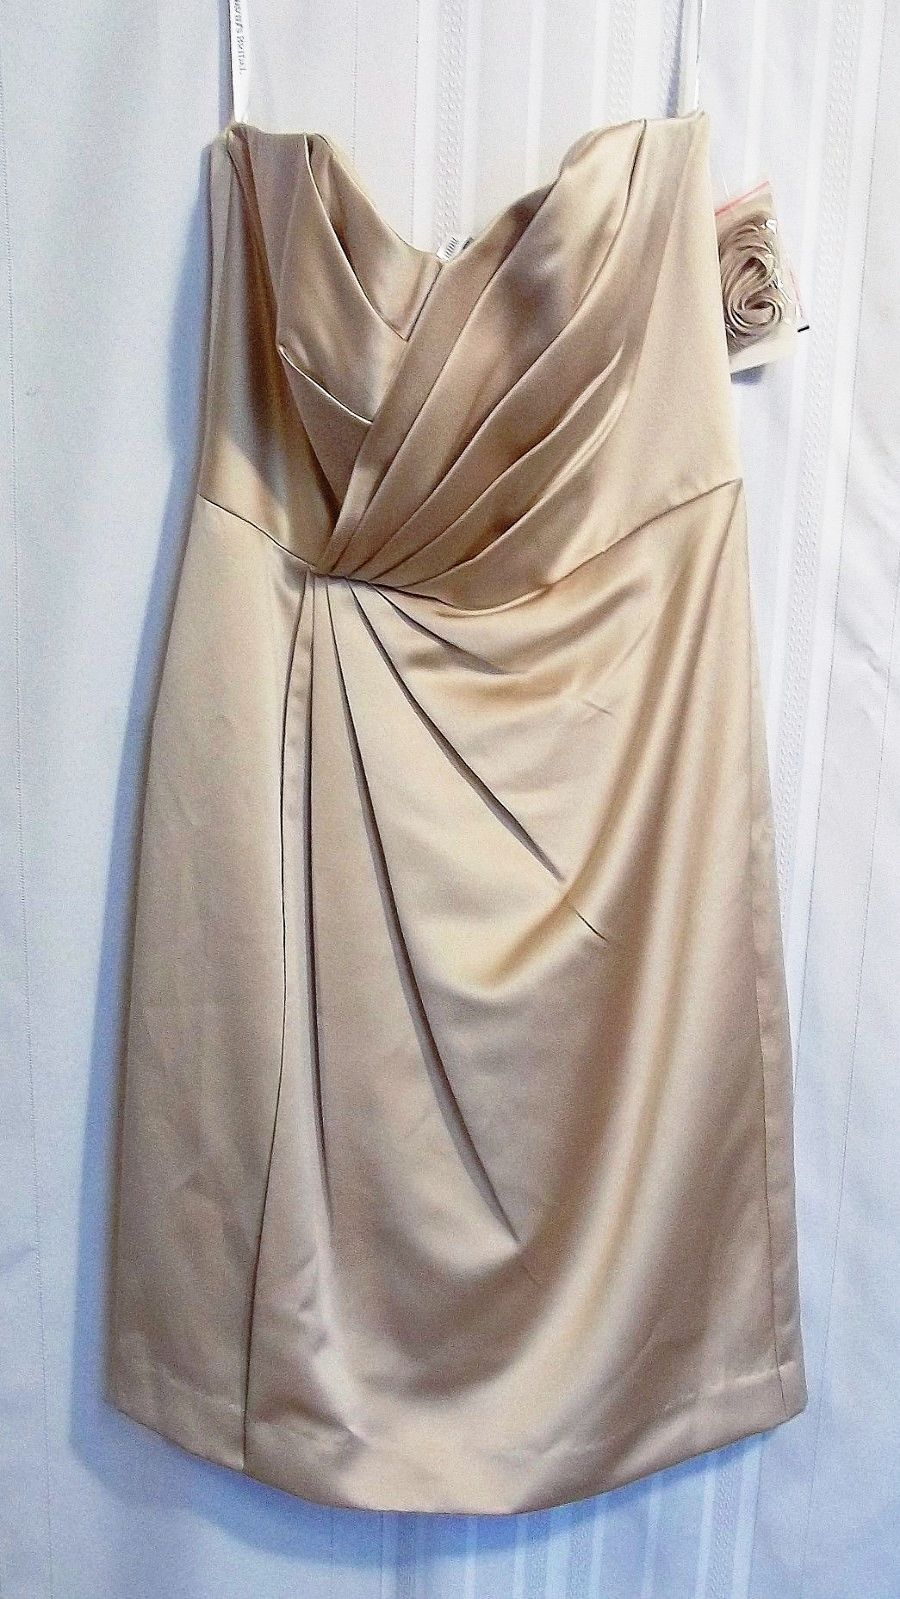 Primary image for NWT David's Bridal Short Strapless Satin Dress w/ Pleating Size 8 Nice